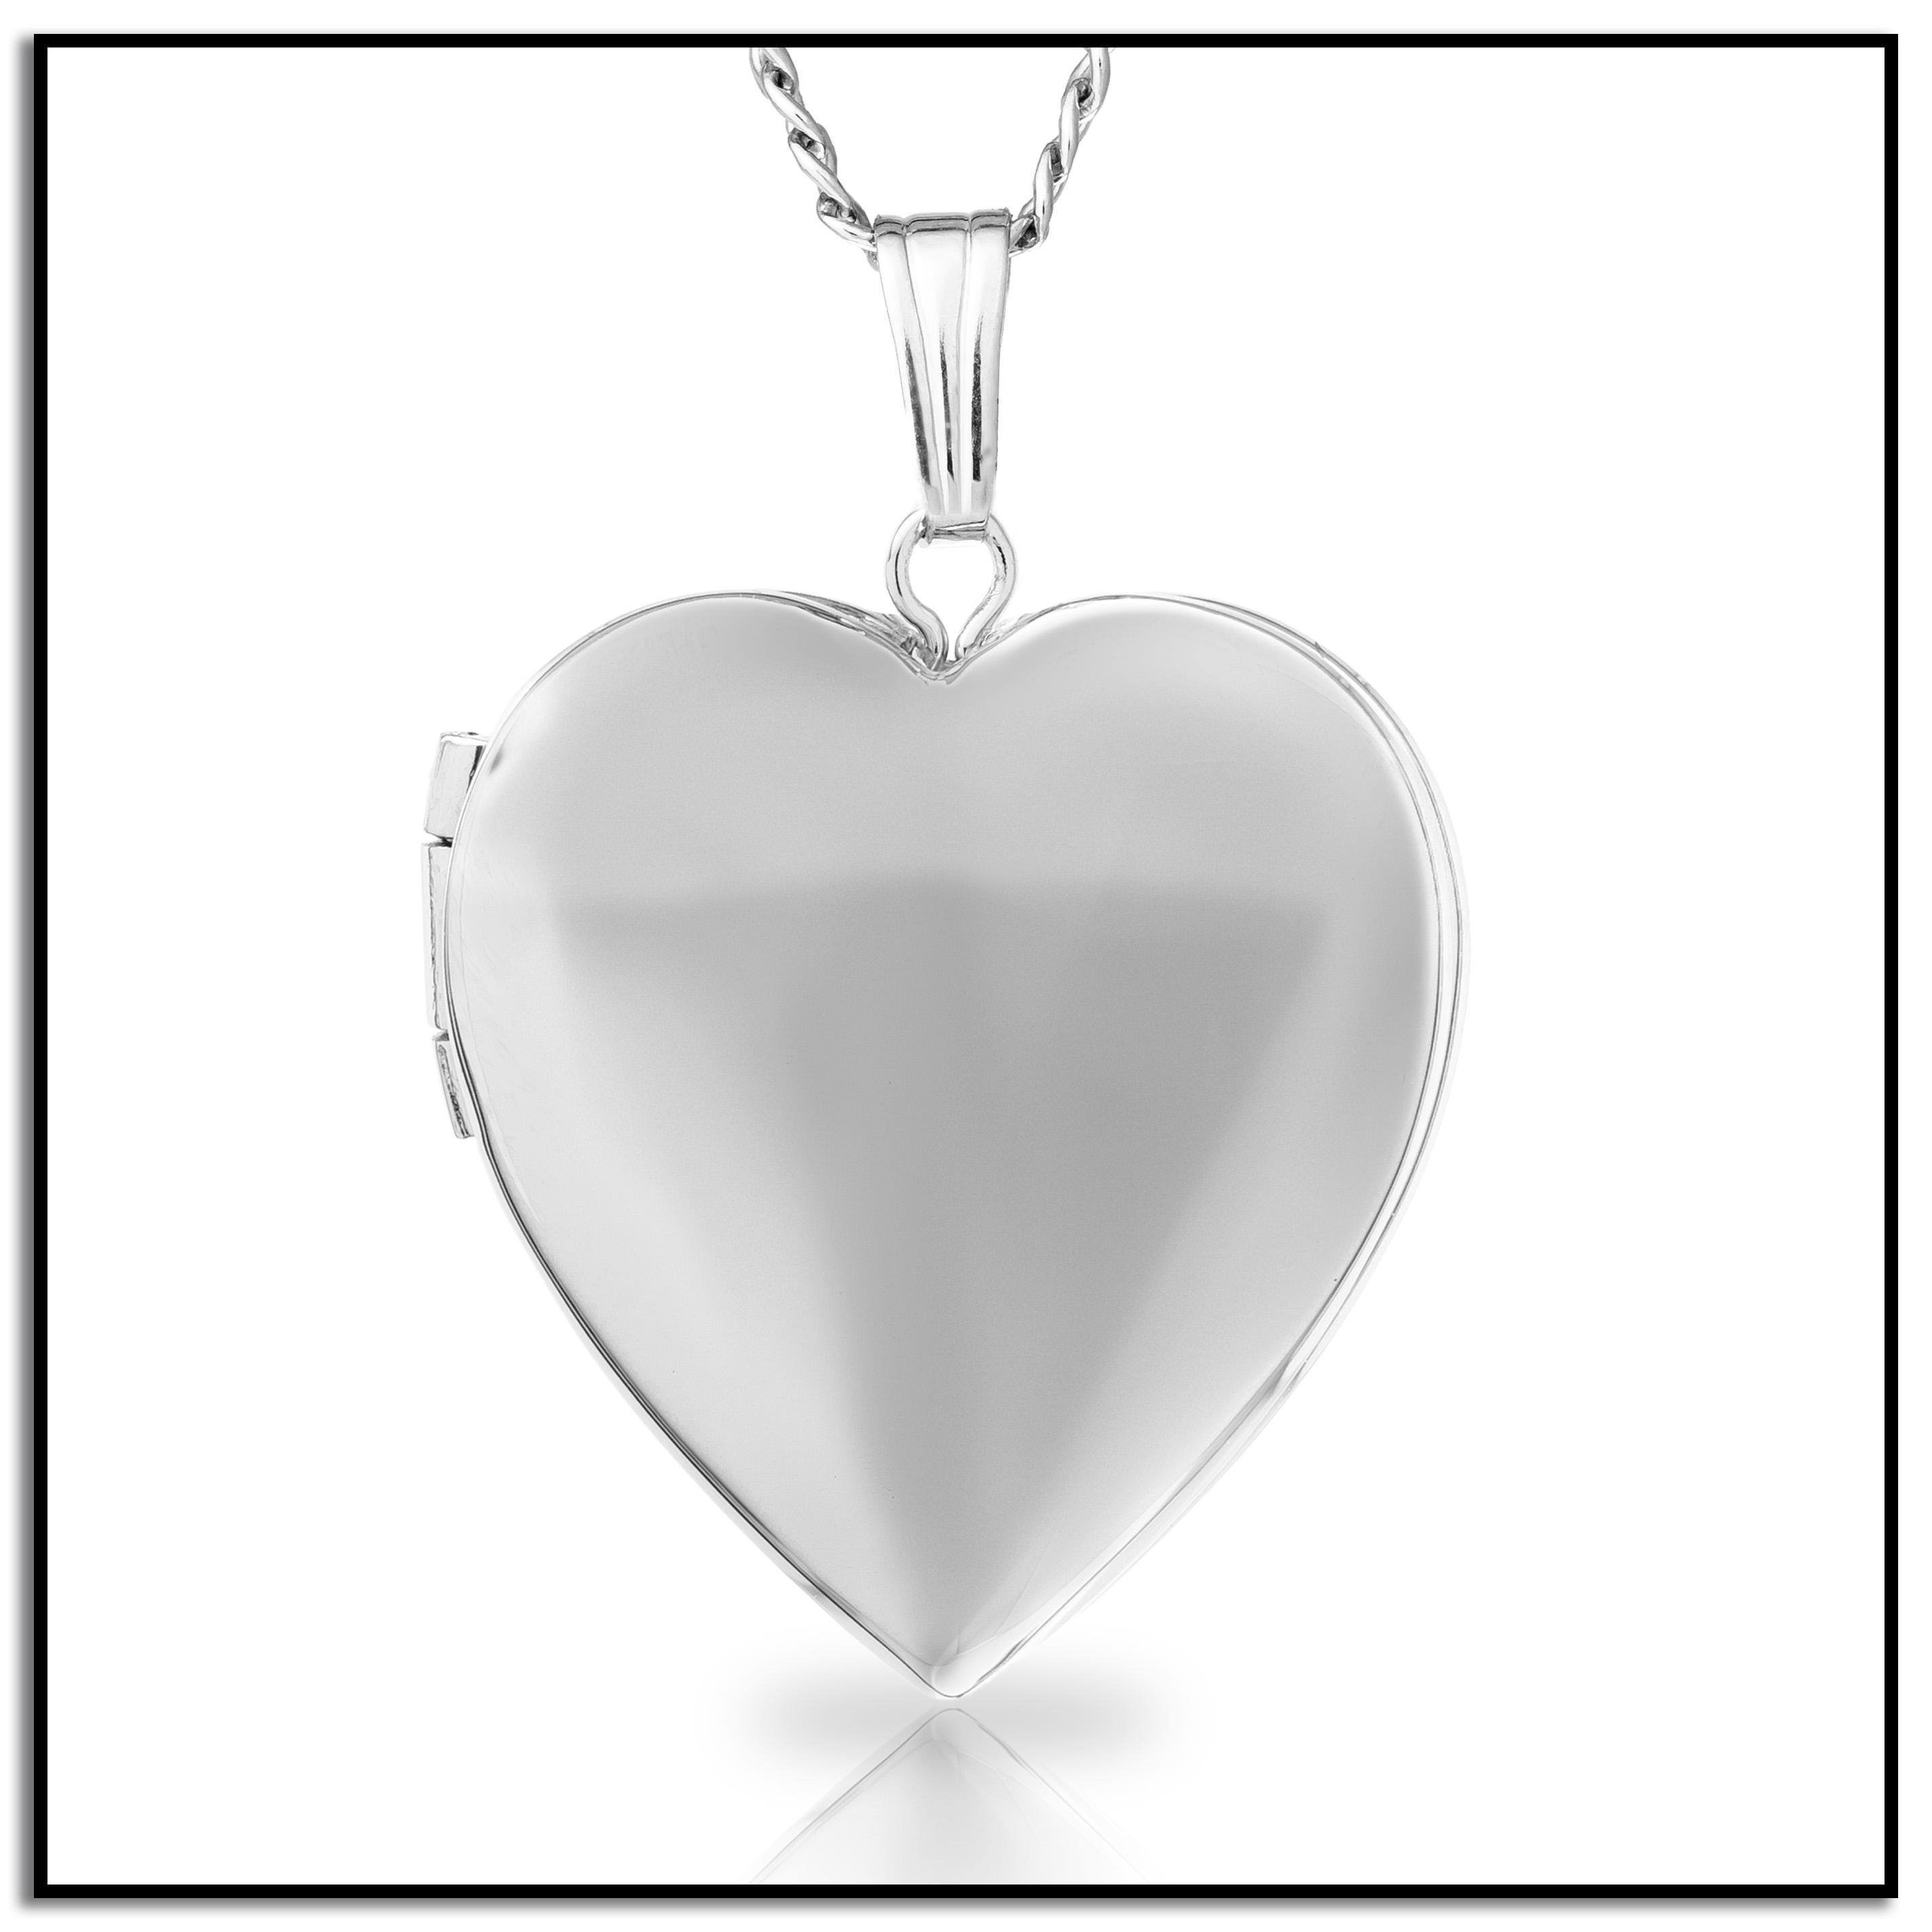 locket products studio silhouette lockets classic charm le sterling papier large silver necklace